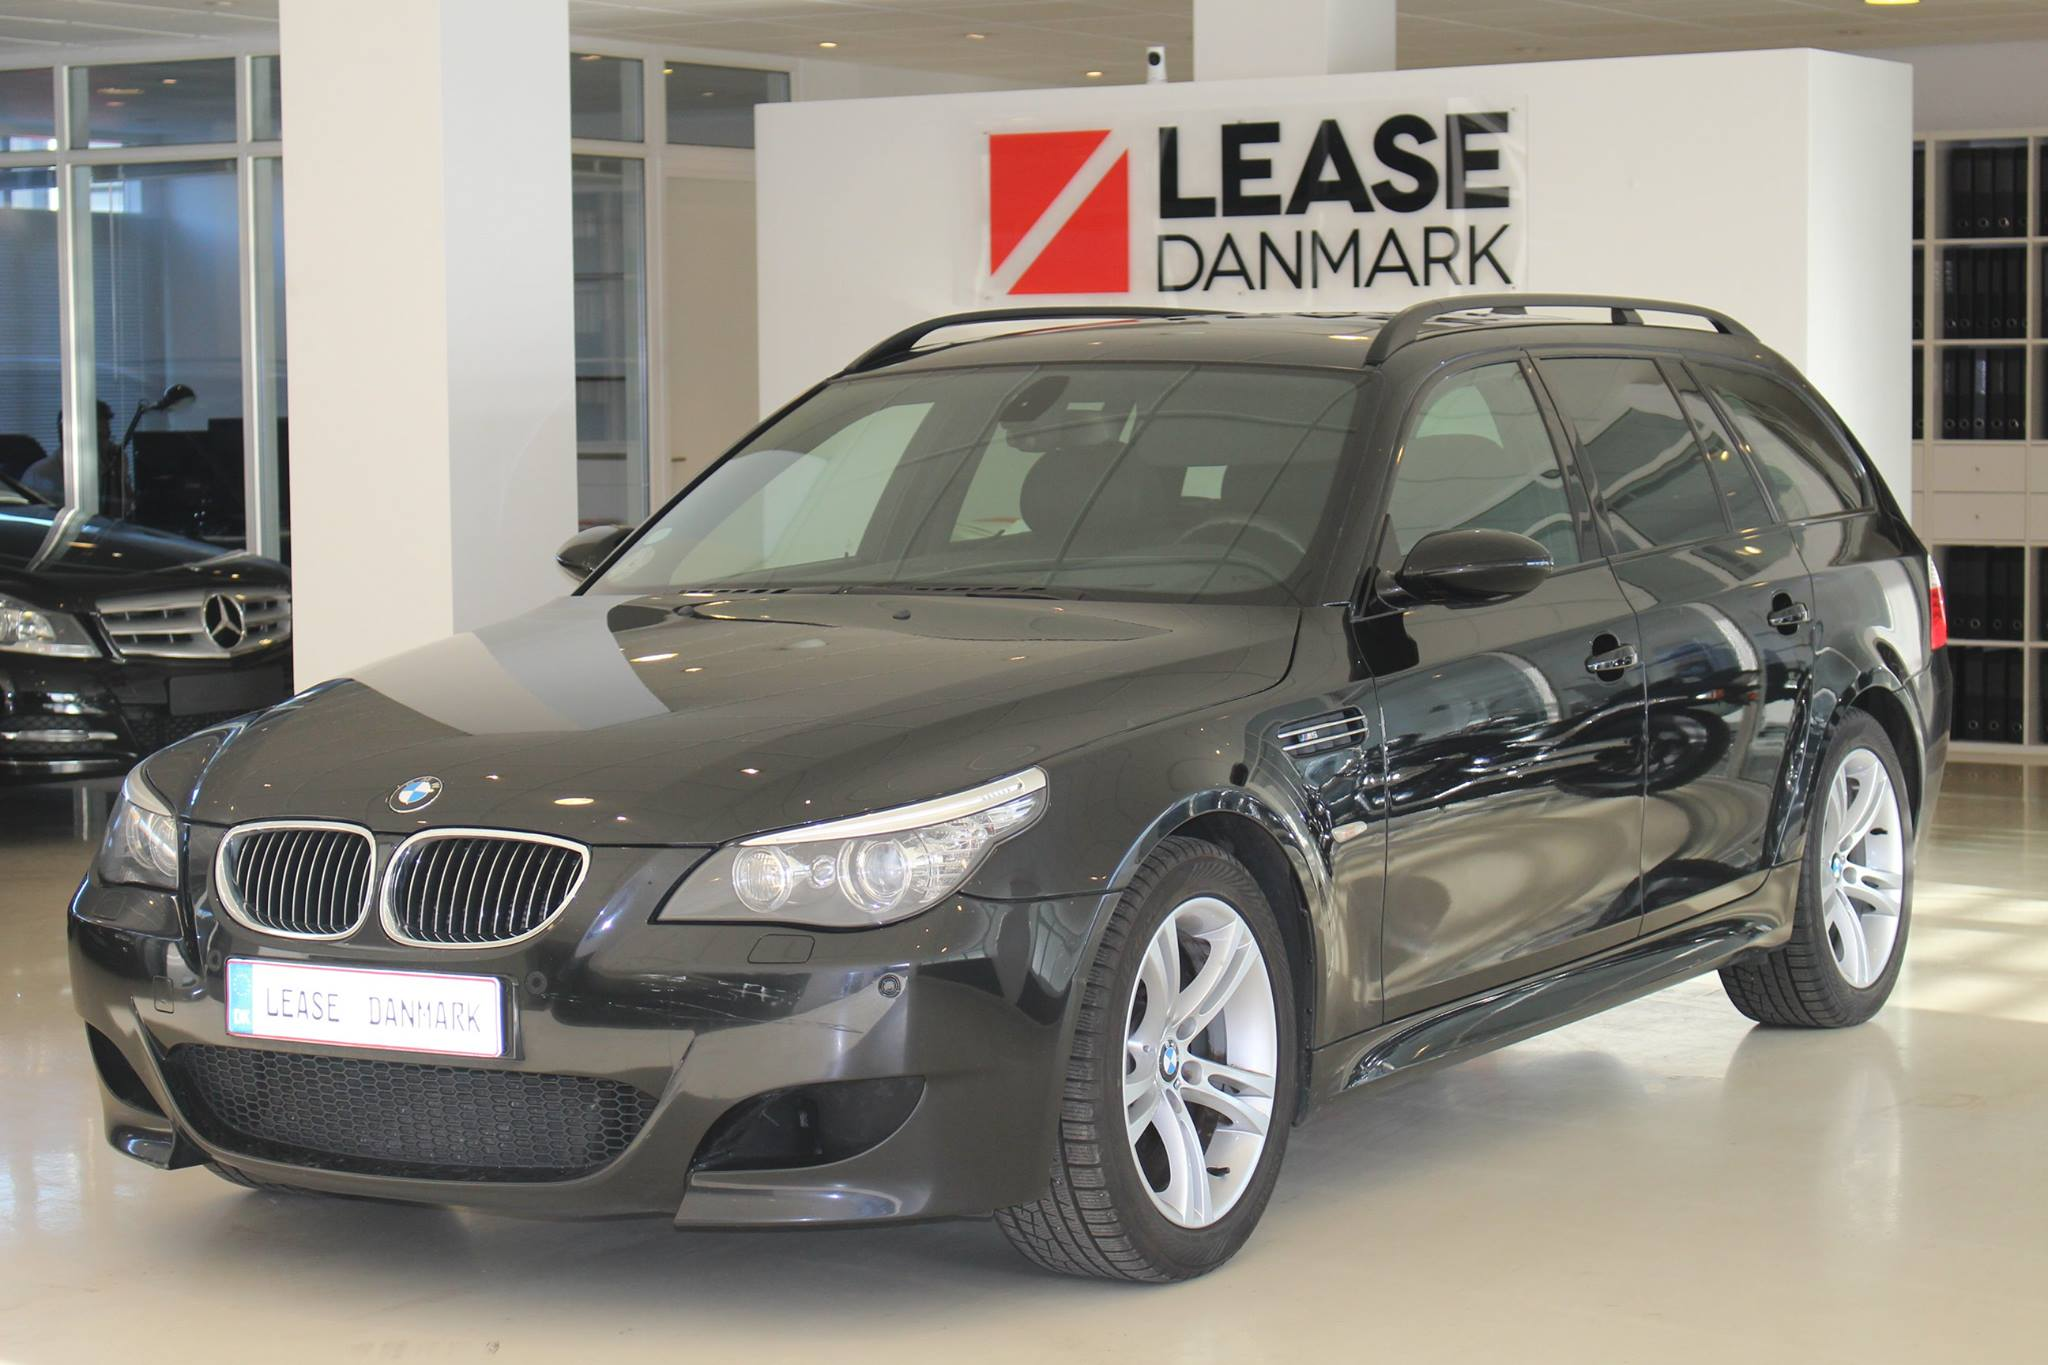 bmw m5 stationcar facelift lease danmark. Black Bedroom Furniture Sets. Home Design Ideas